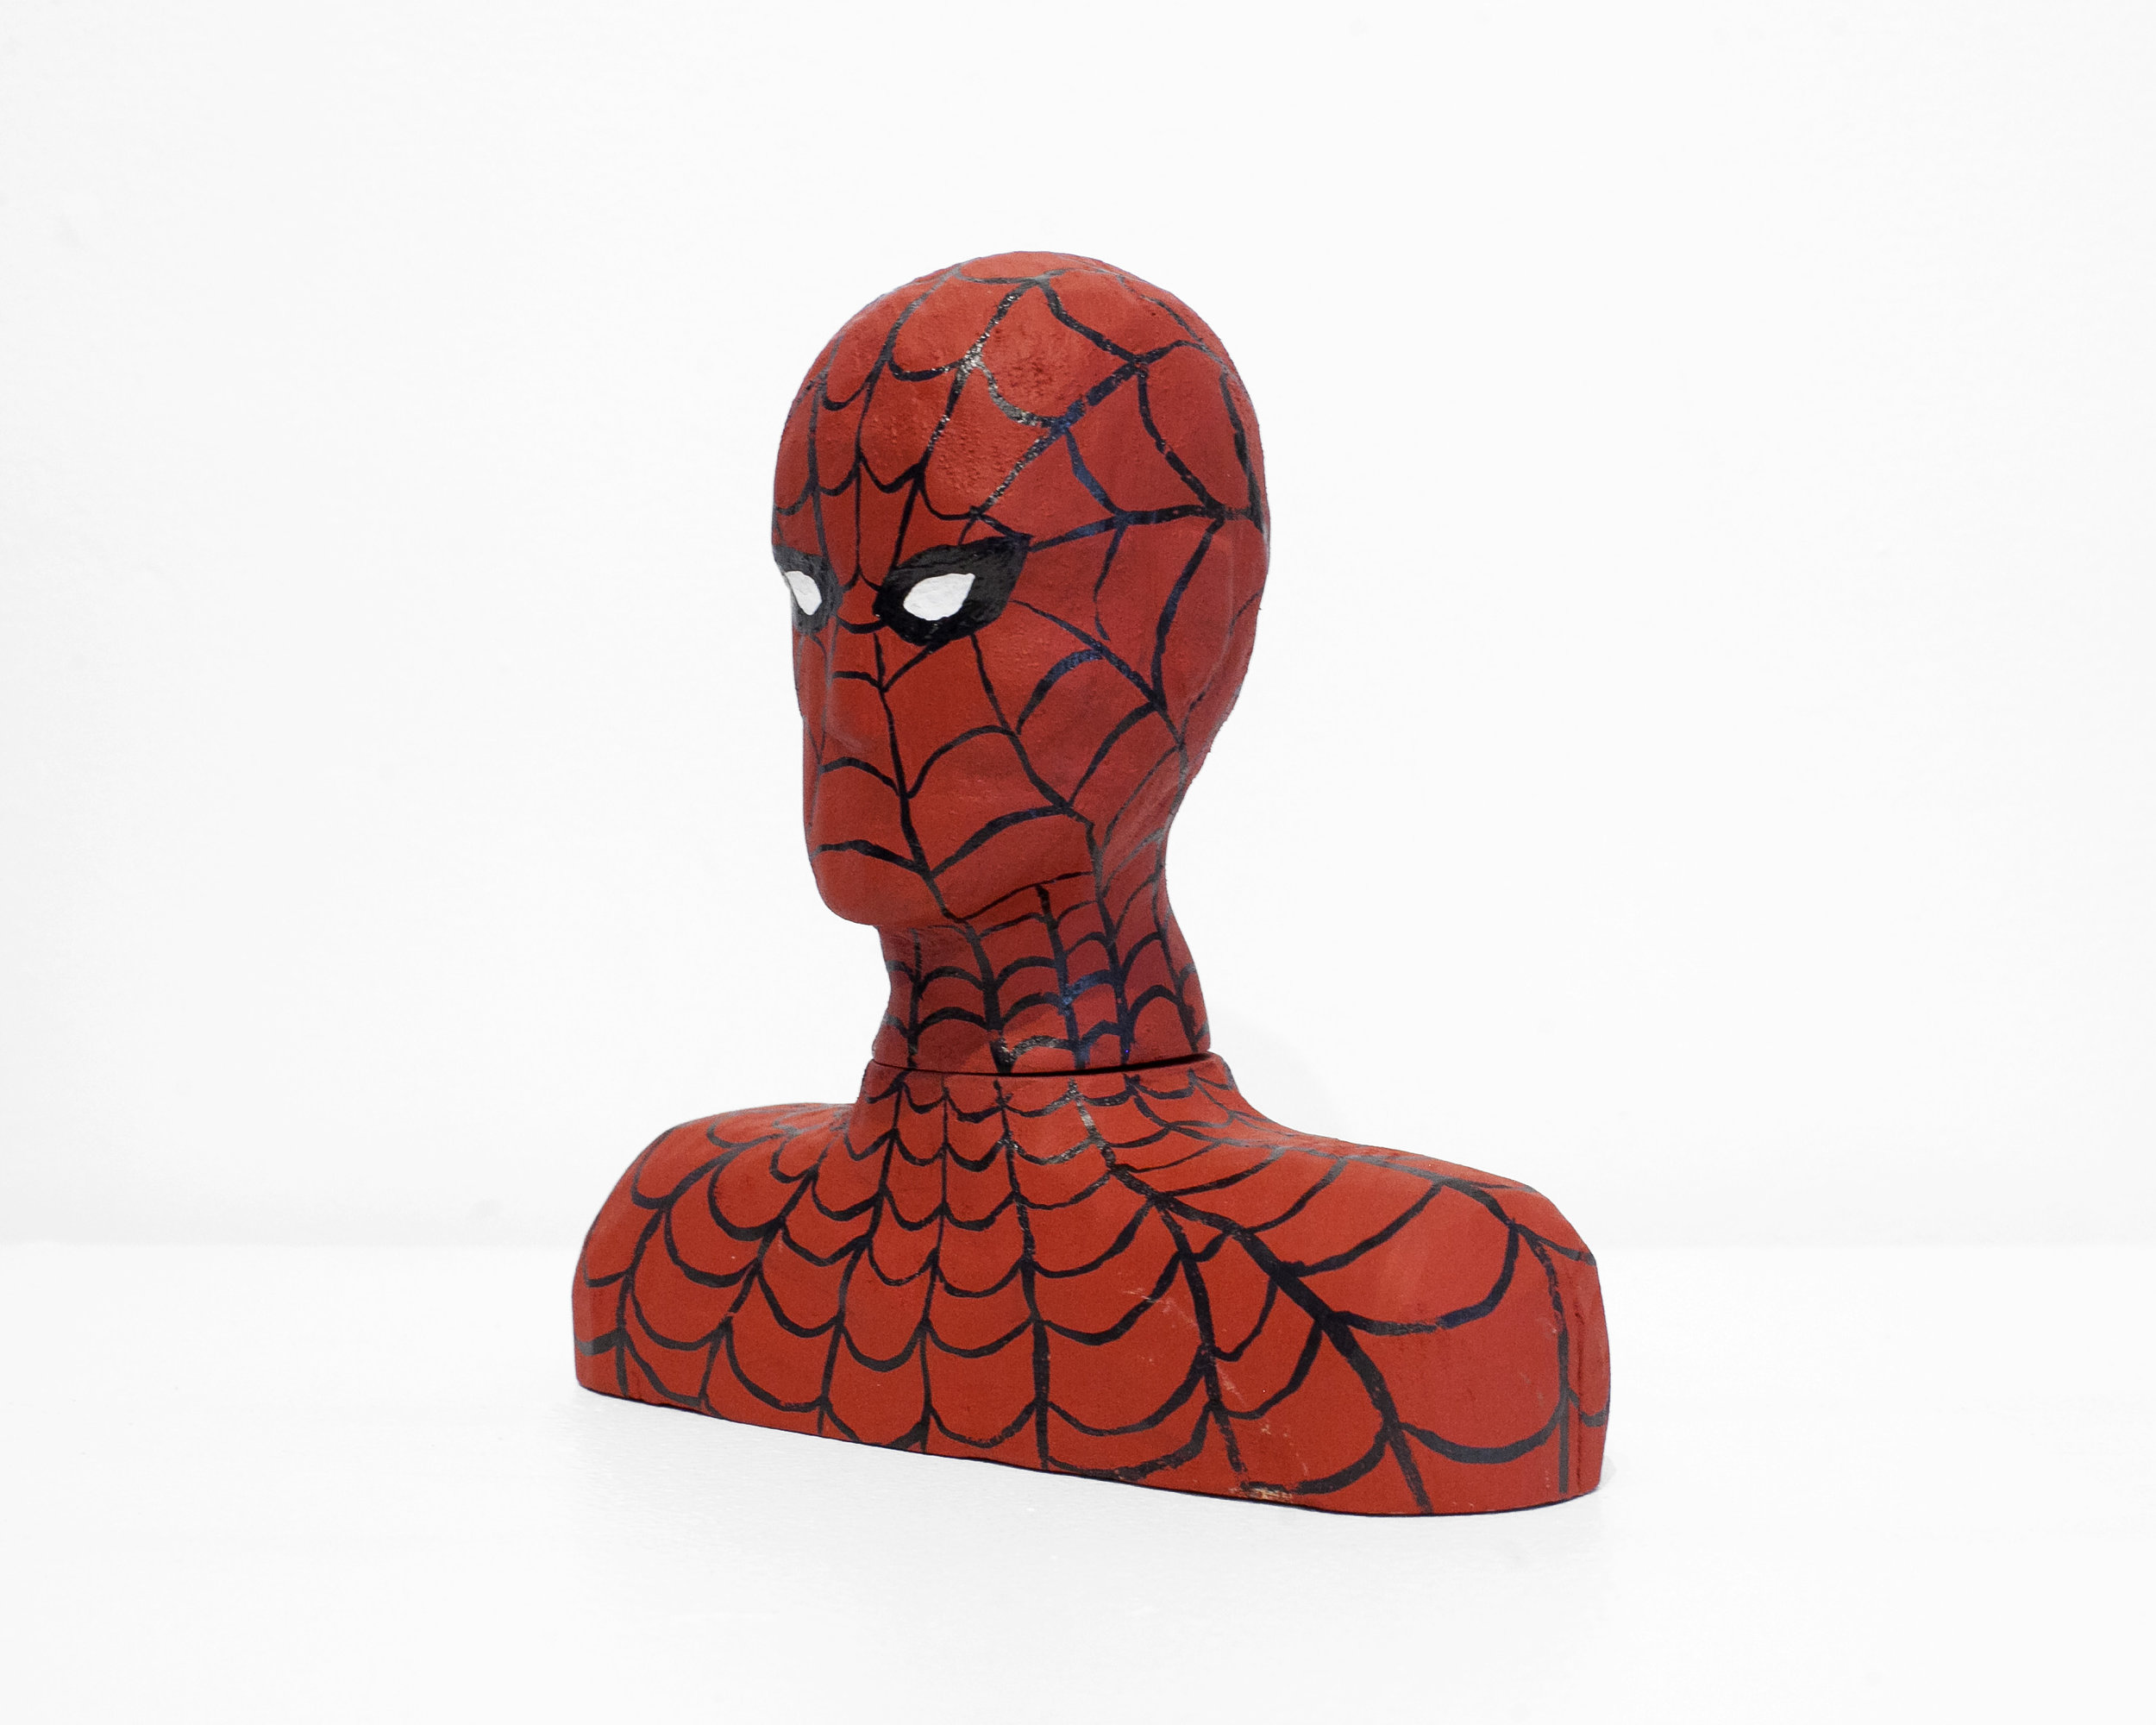 oliverhawk_spidermanheadsculpture_1.jpg